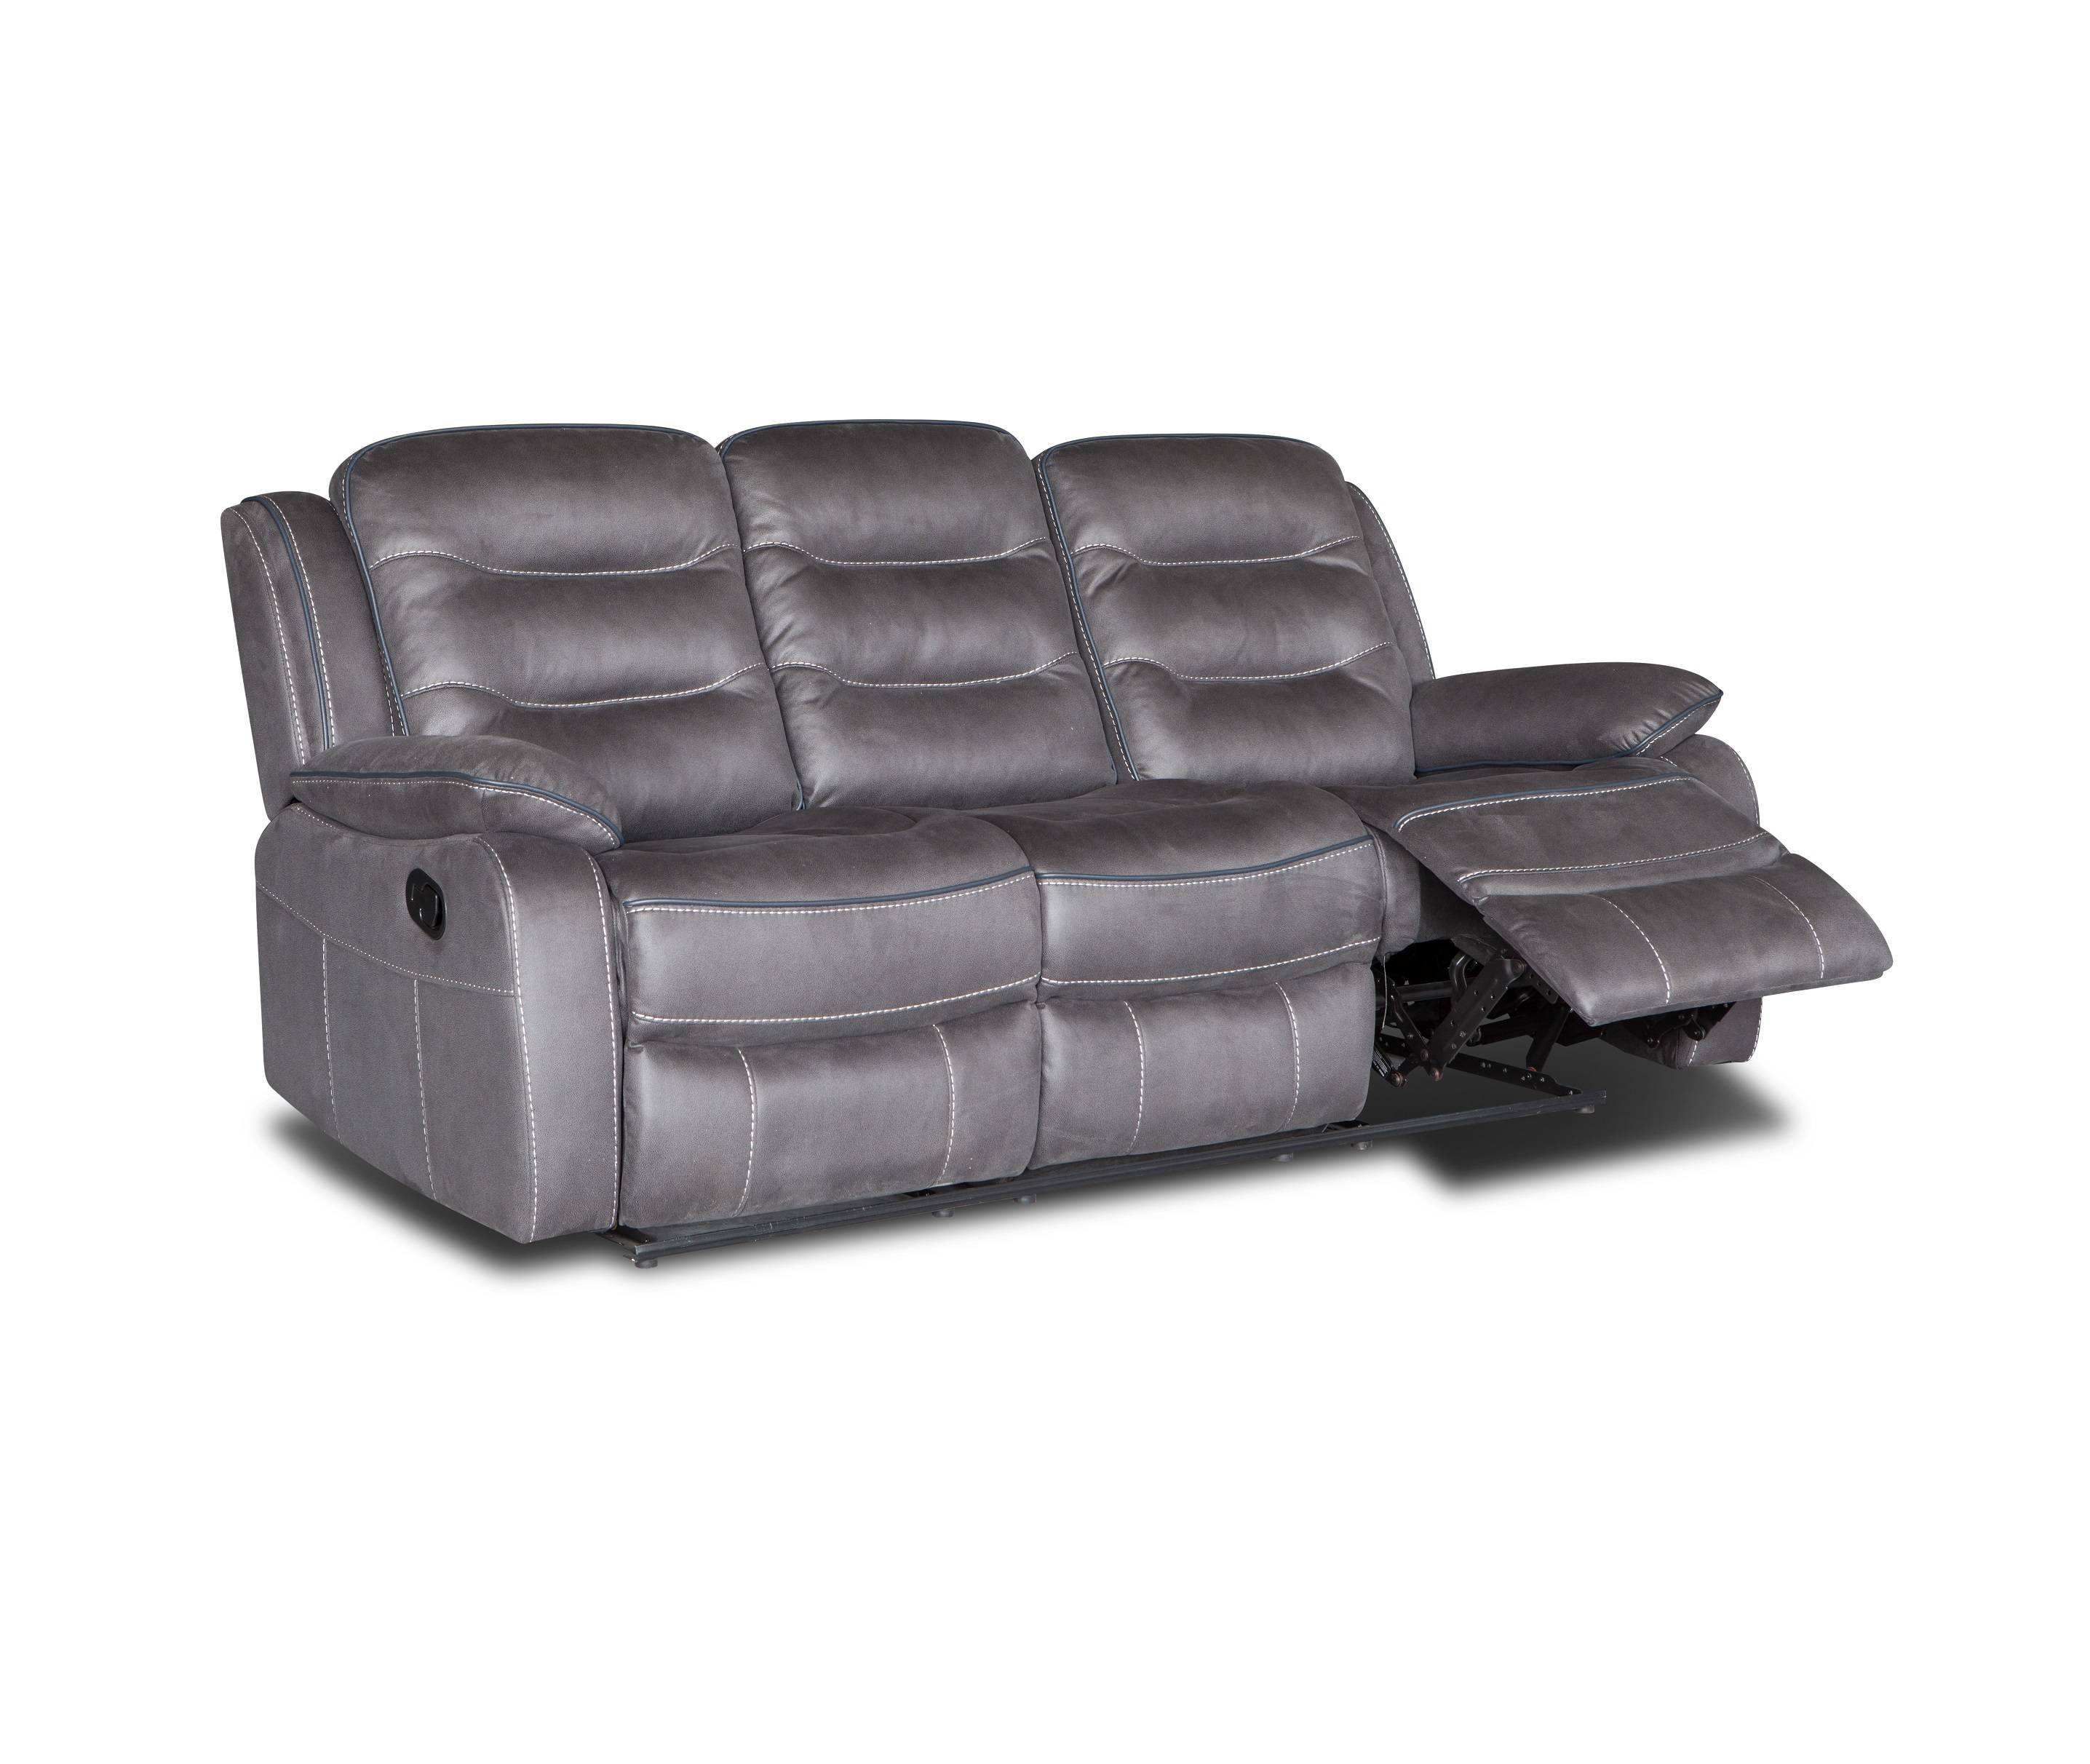 American style 3+2+1 leather power reclining sofa